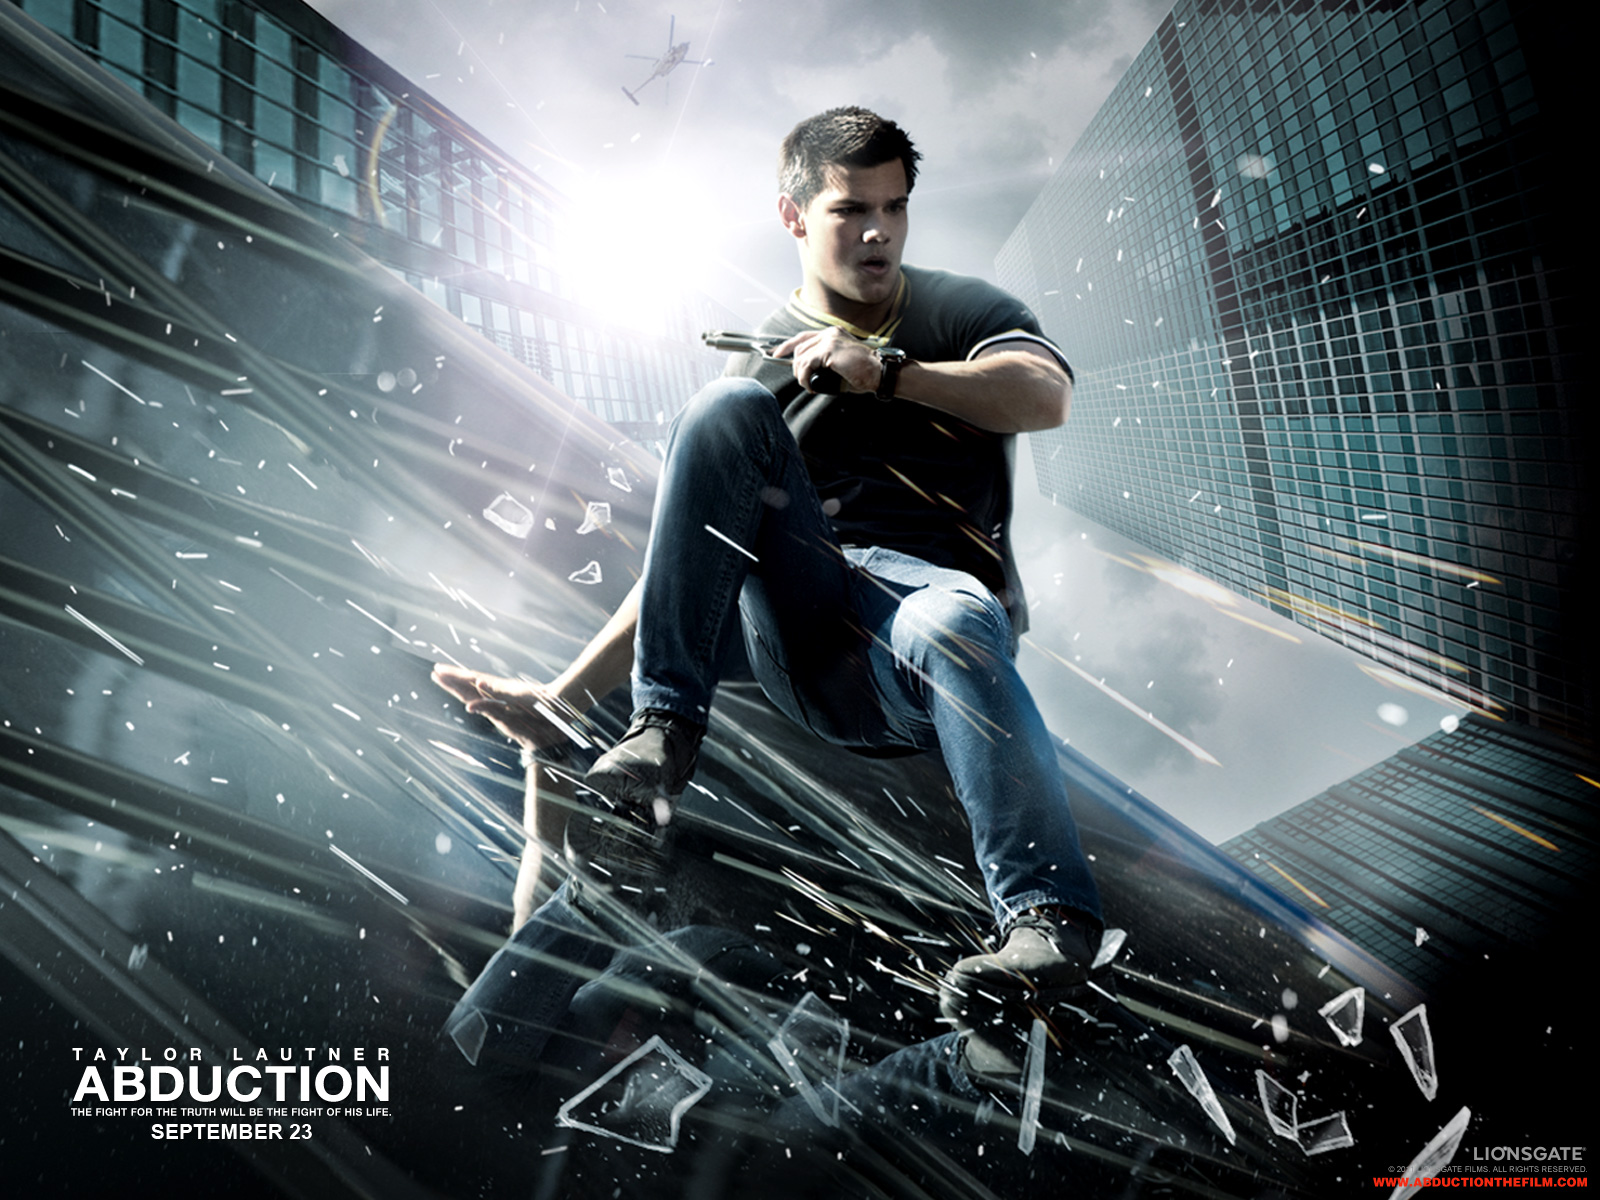 http://1.bp.blogspot.com/-GWONLiNWltk/ToADaGnqFpI/AAAAAAAAD8w/D0IRDnUeeVY/s1600/abduction_wallpapers_fullscreen_7.jpg